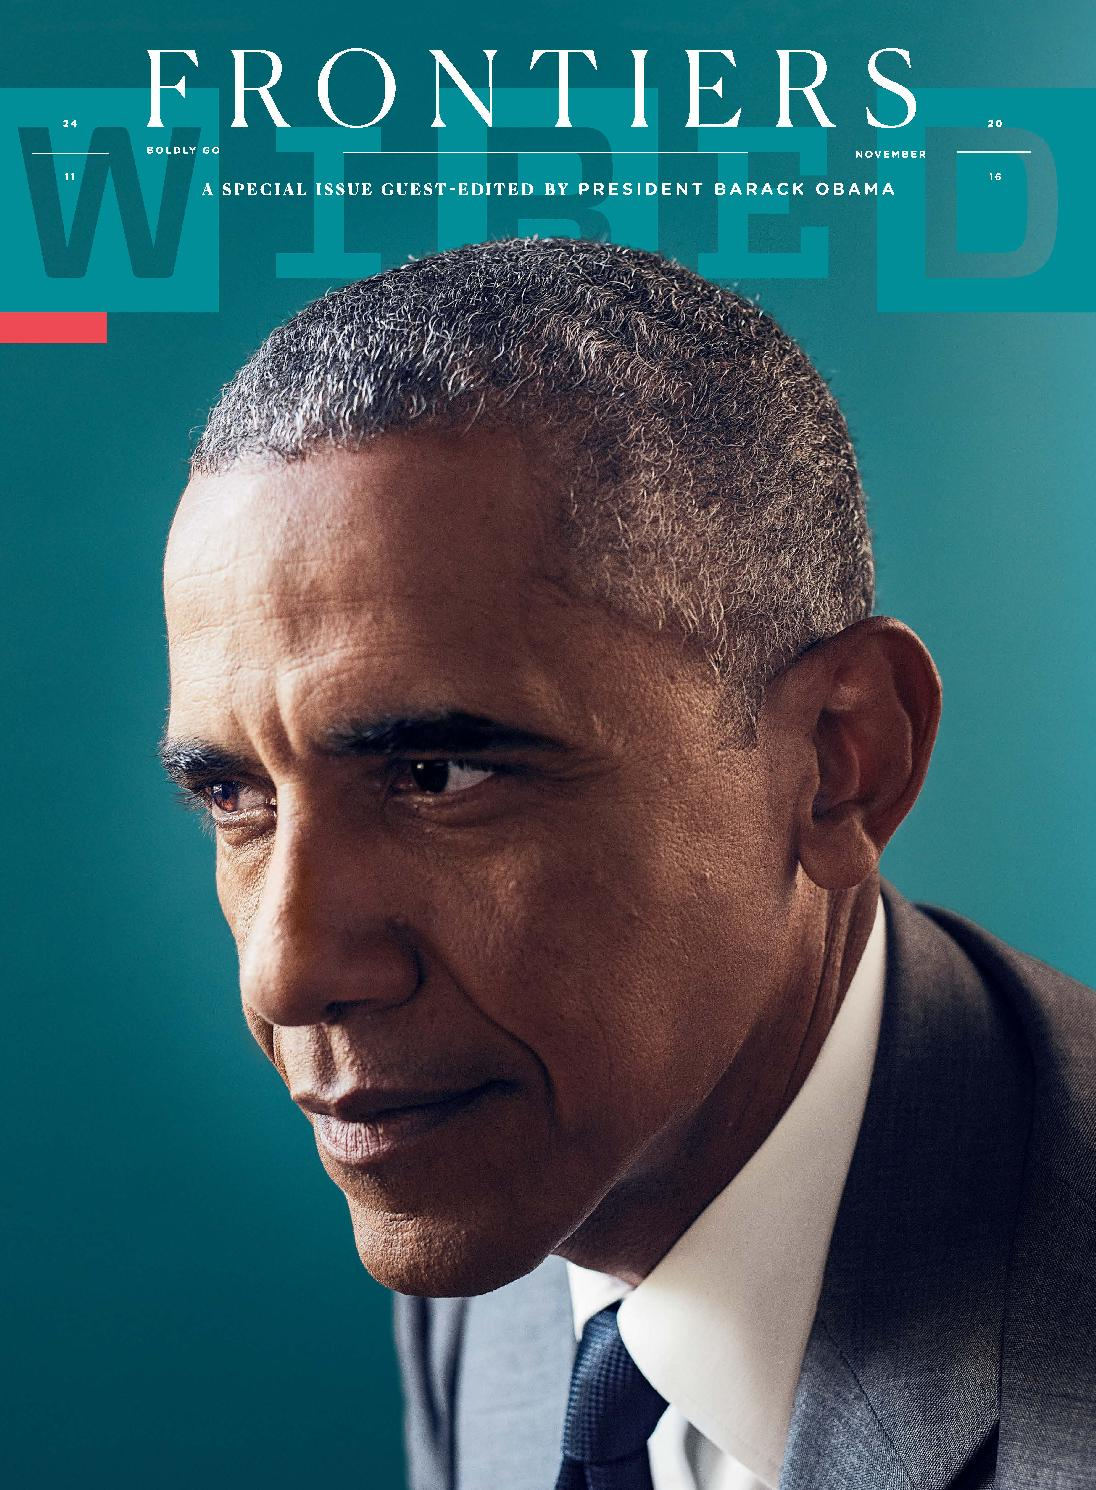 Wired usa frontiers president barack obama november 2016 by lăng mộ ...